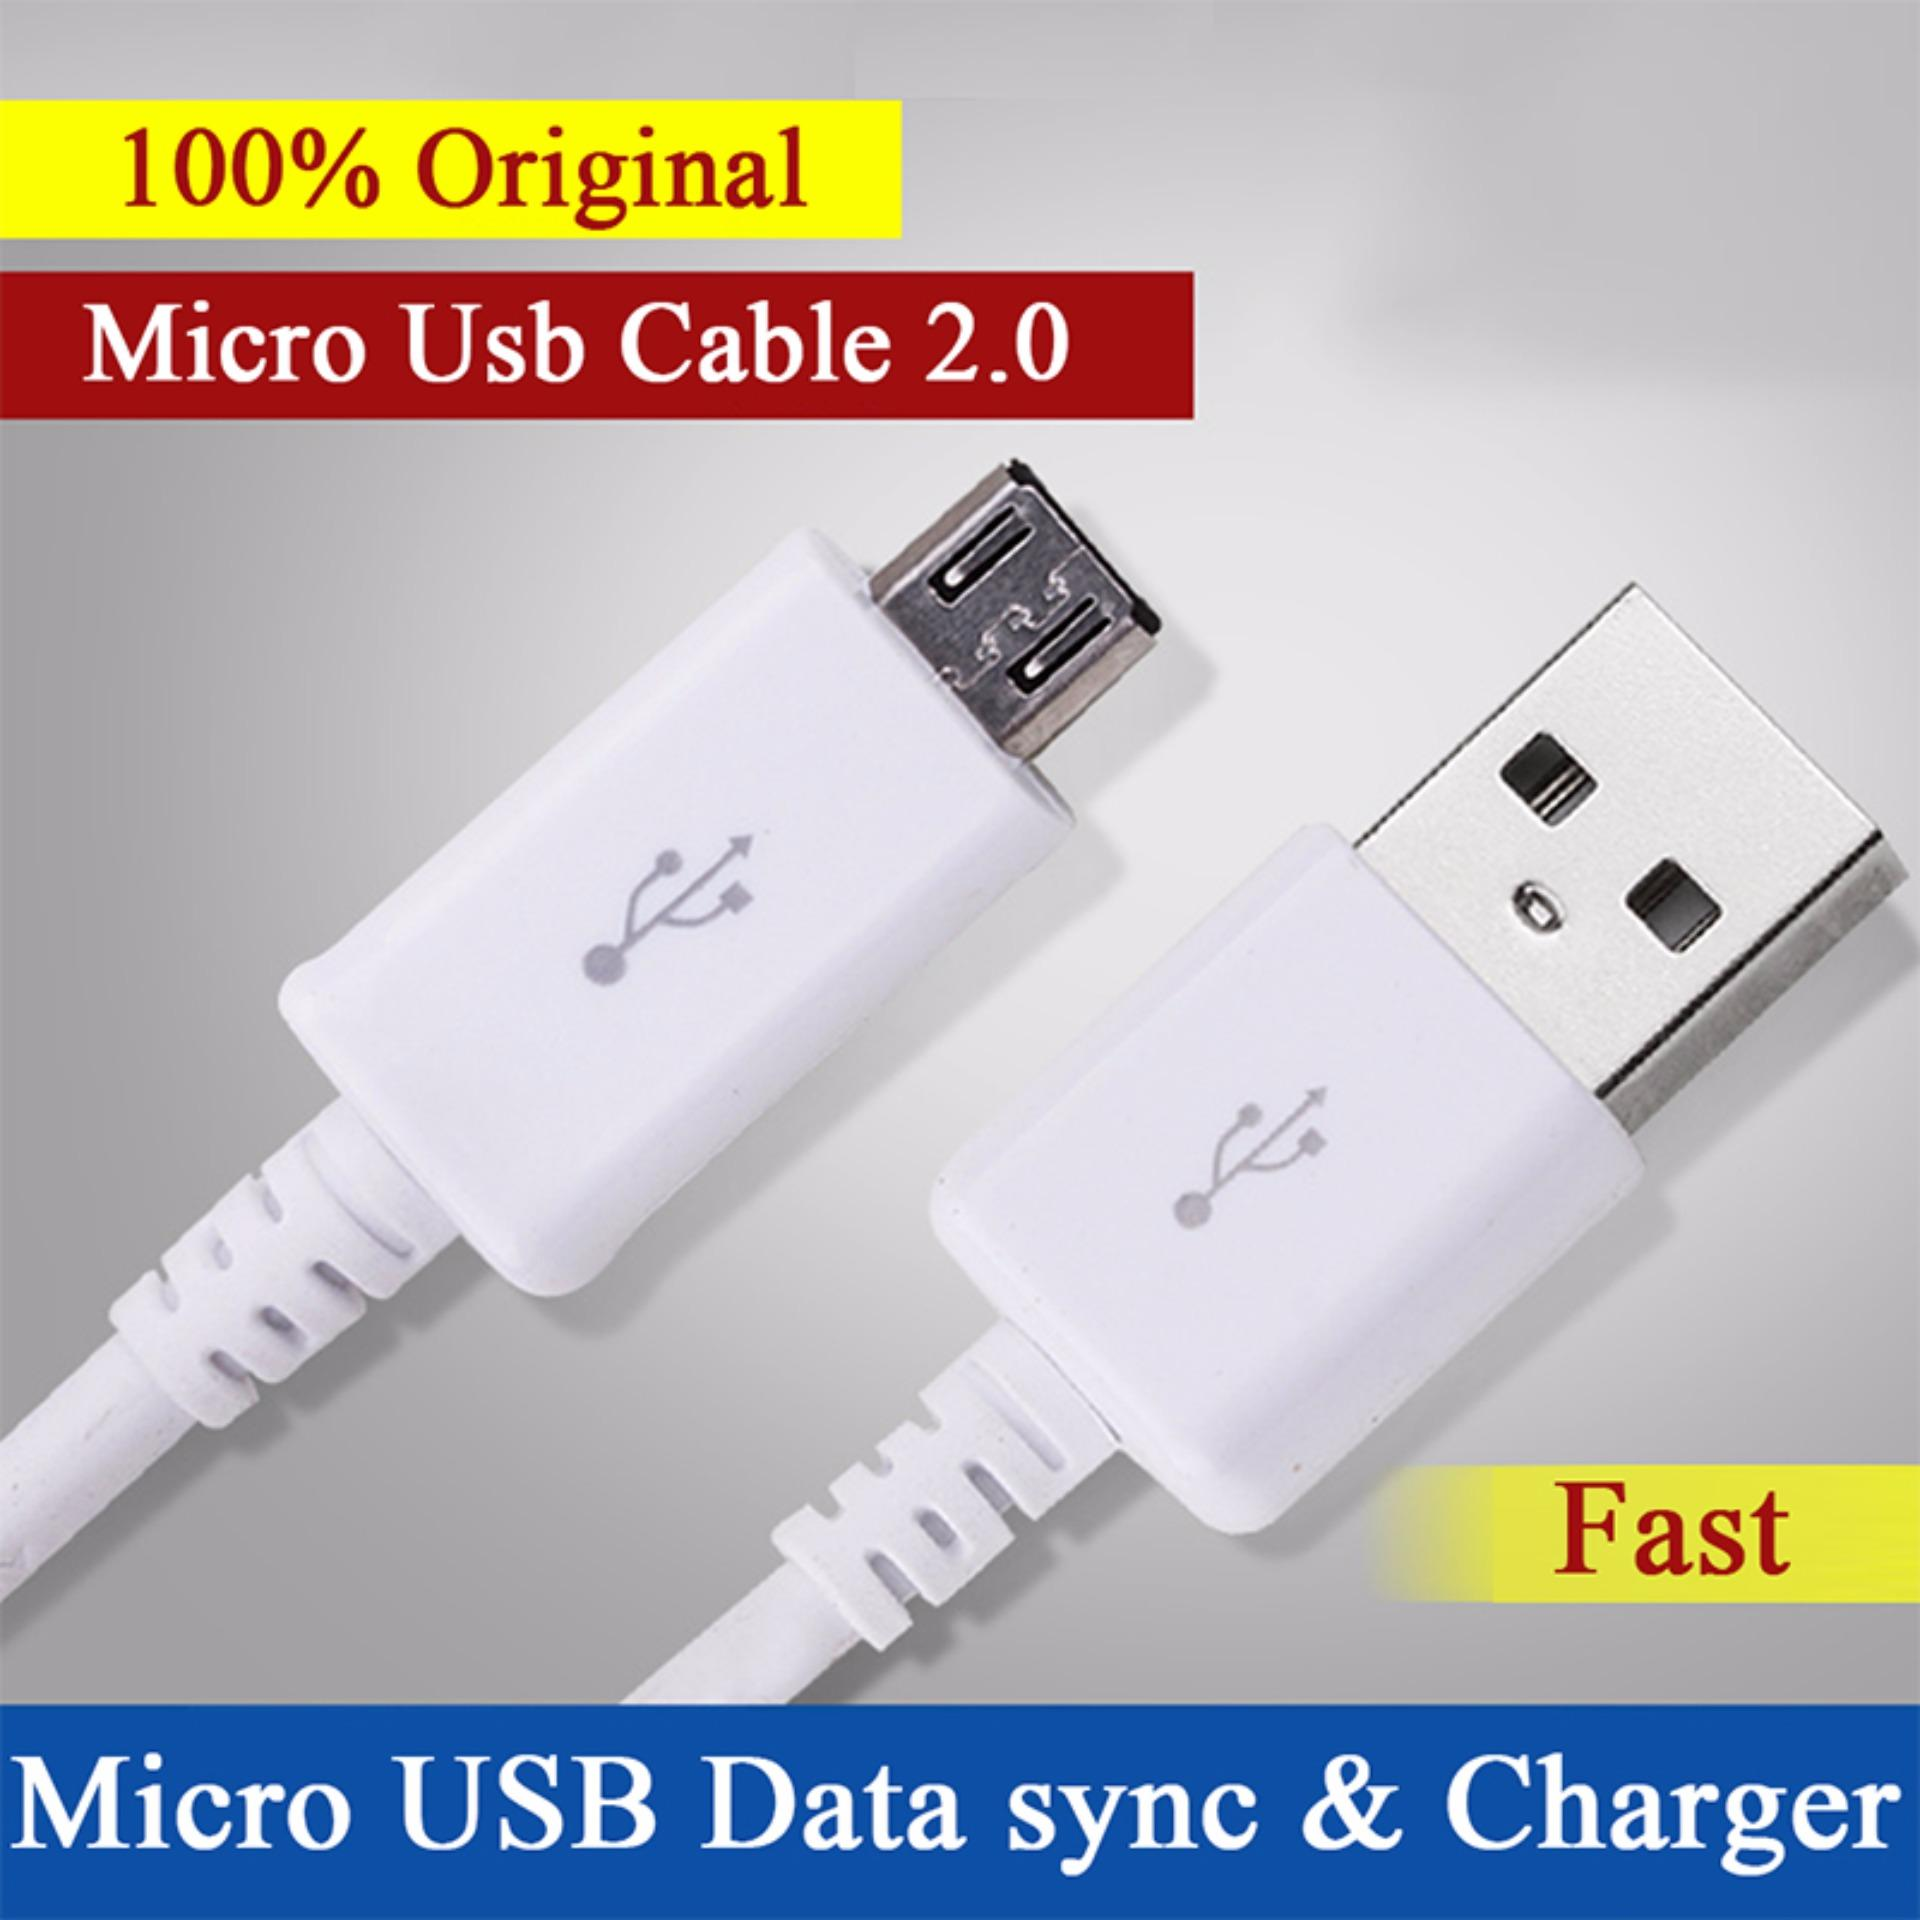 Philippines 100 Original Micro Usb Cable Fast Charger 12m For Travel Xiaomi 2ampere Samsung Galaxys4 S6 S7 Note